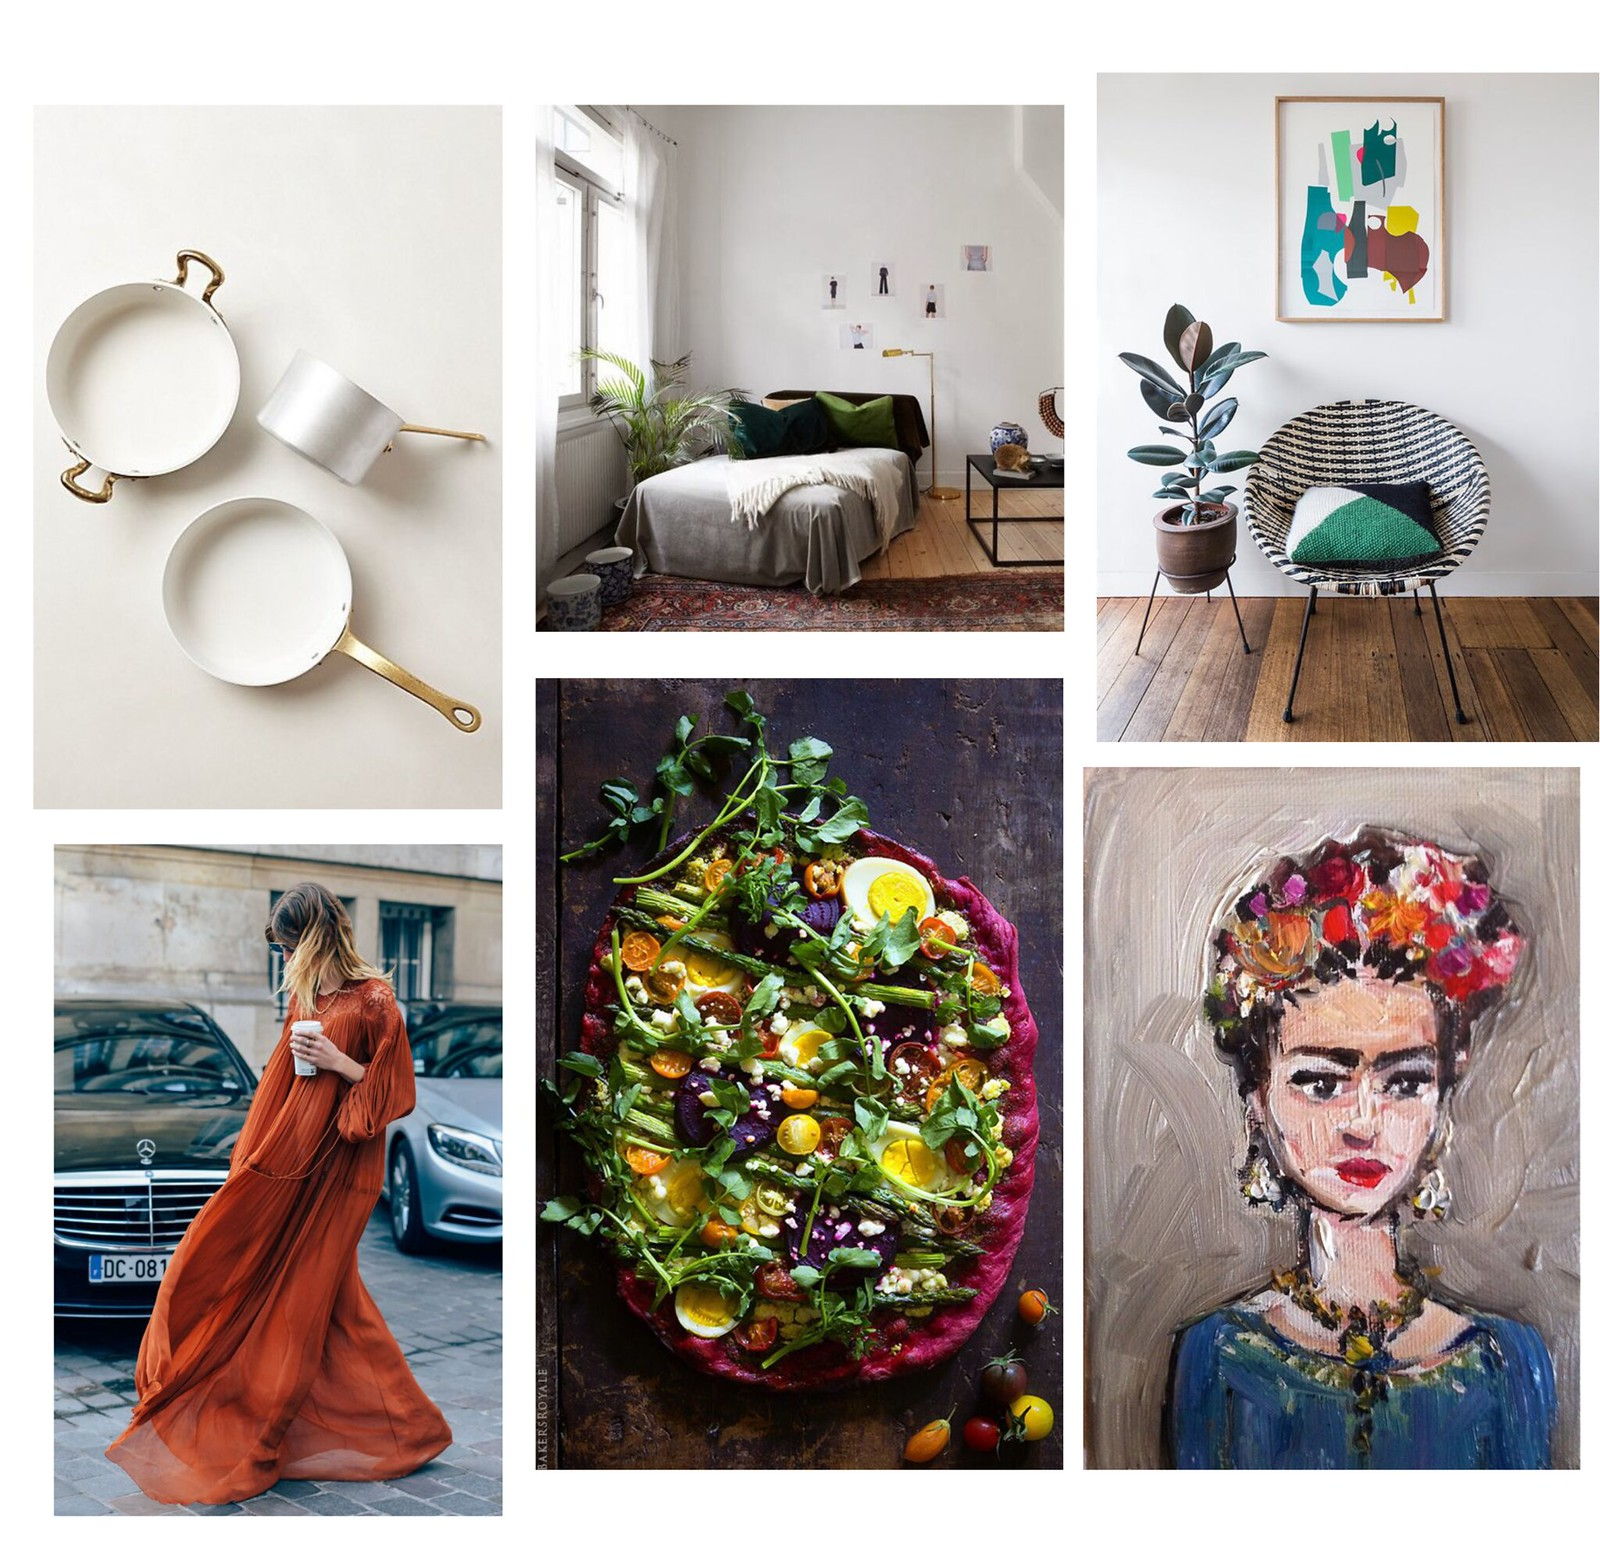 frida kahlo painting, boho chic dress, rödbetspizza, emaljkastruller